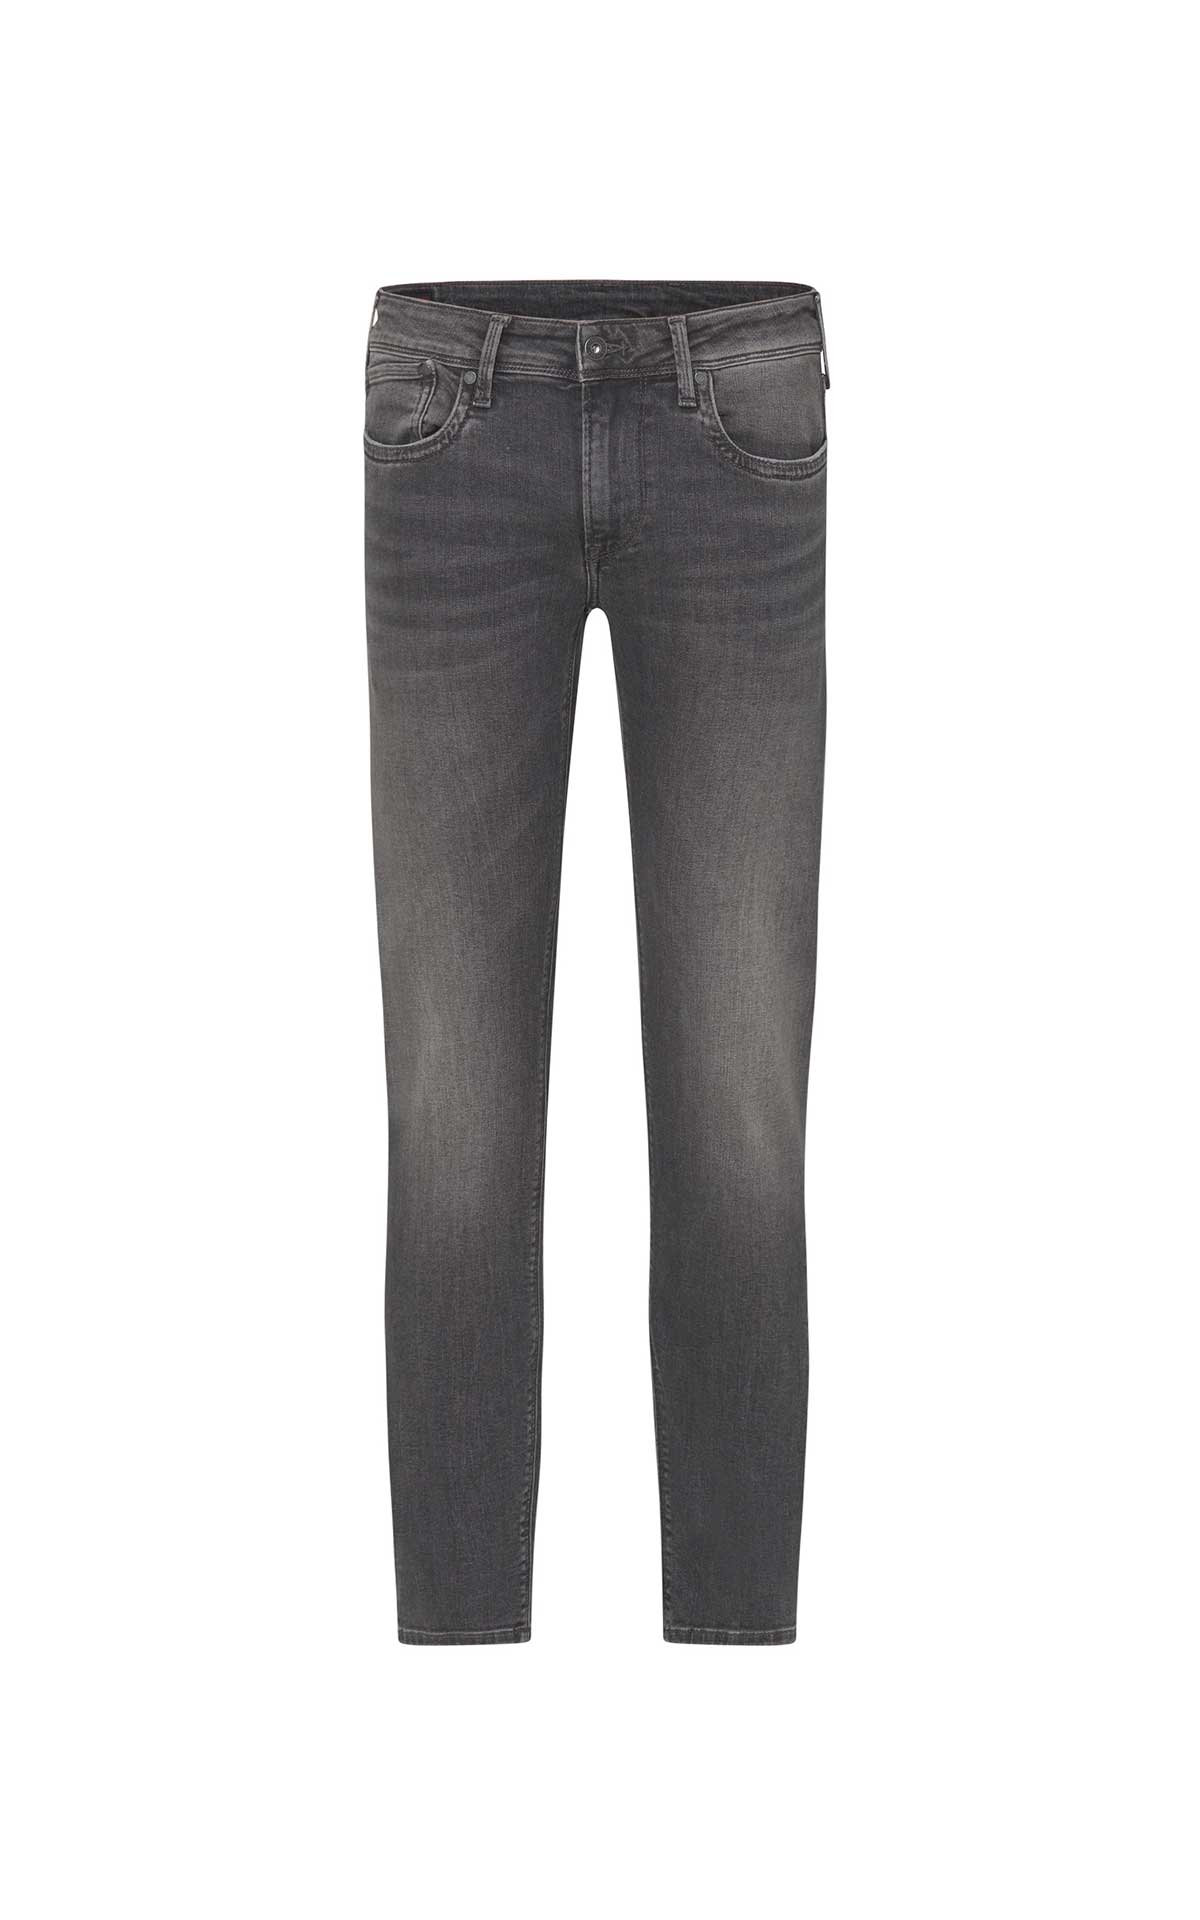 Gray jeans Pepe Jeans